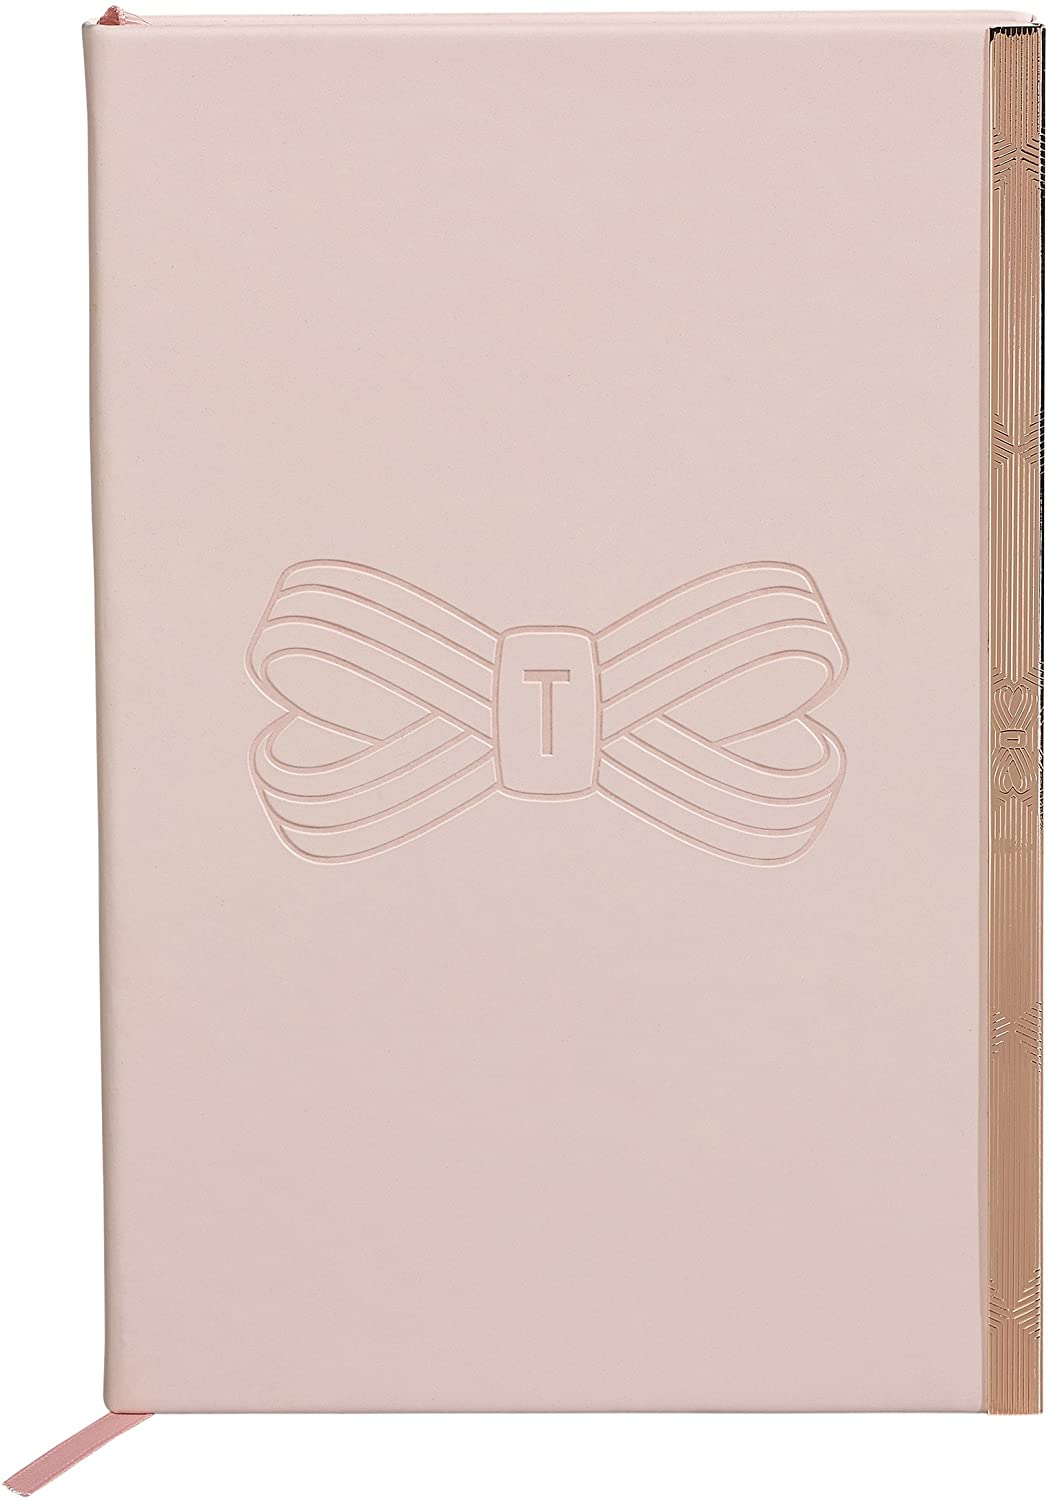 TED417 A5 SOFT TOUCH NOTEBOOK PINK